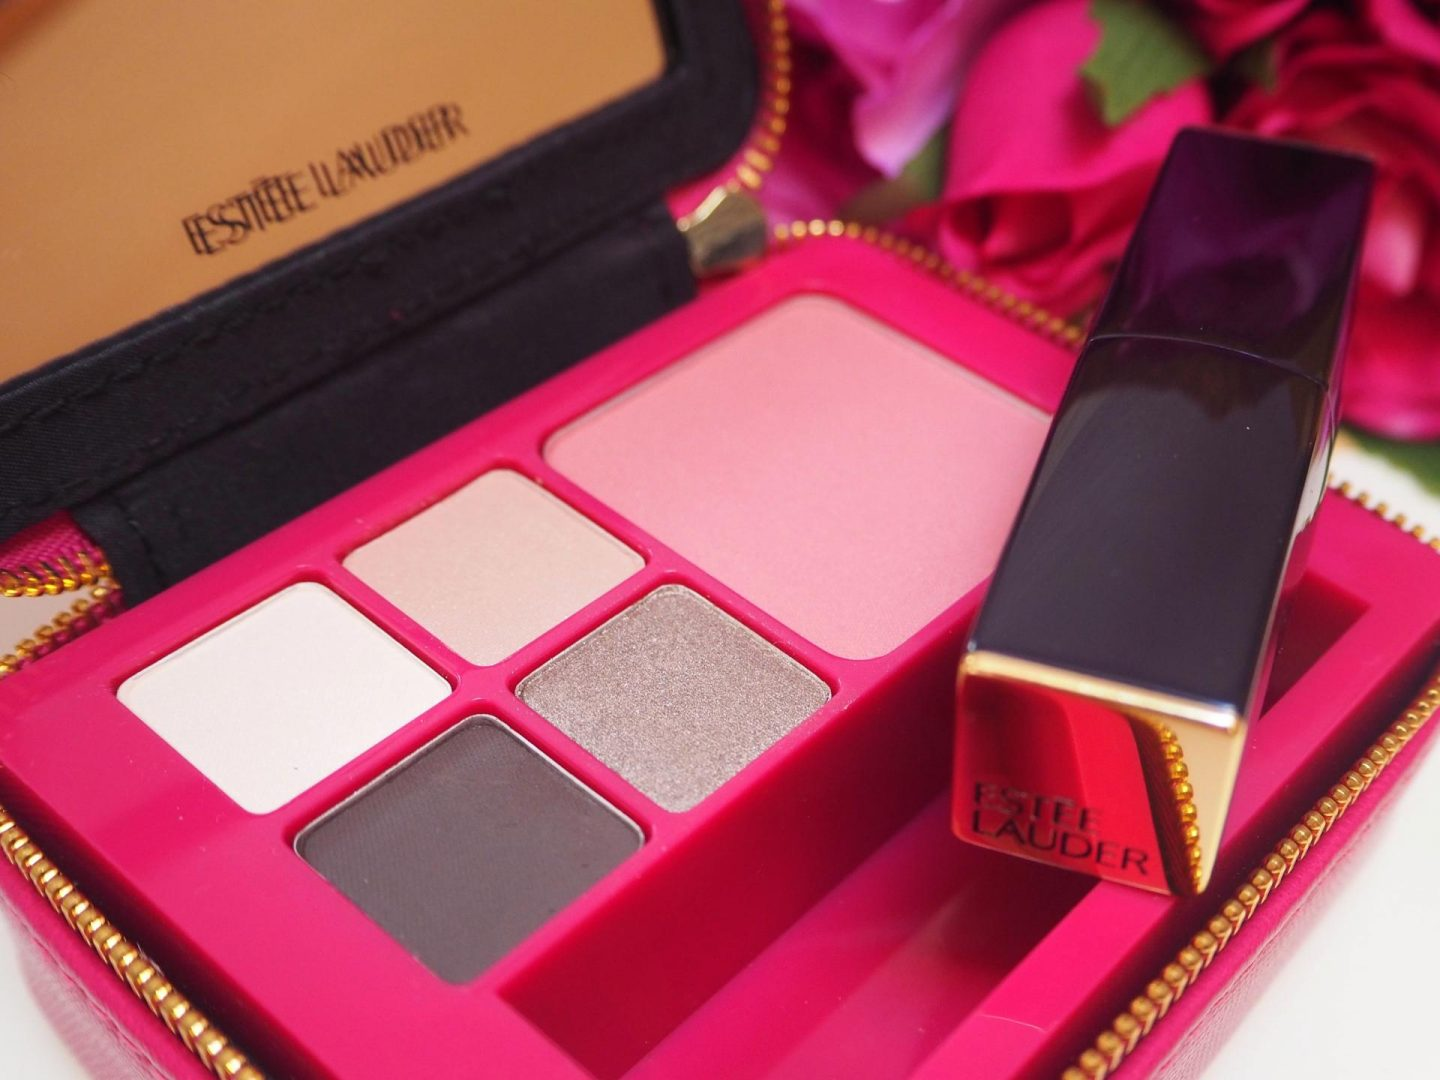 estee-lauder-pink-perfection-colour-collection-for-bca-breast-cancer-awareness-rachel-nicole-uk-beauty-blogger-3